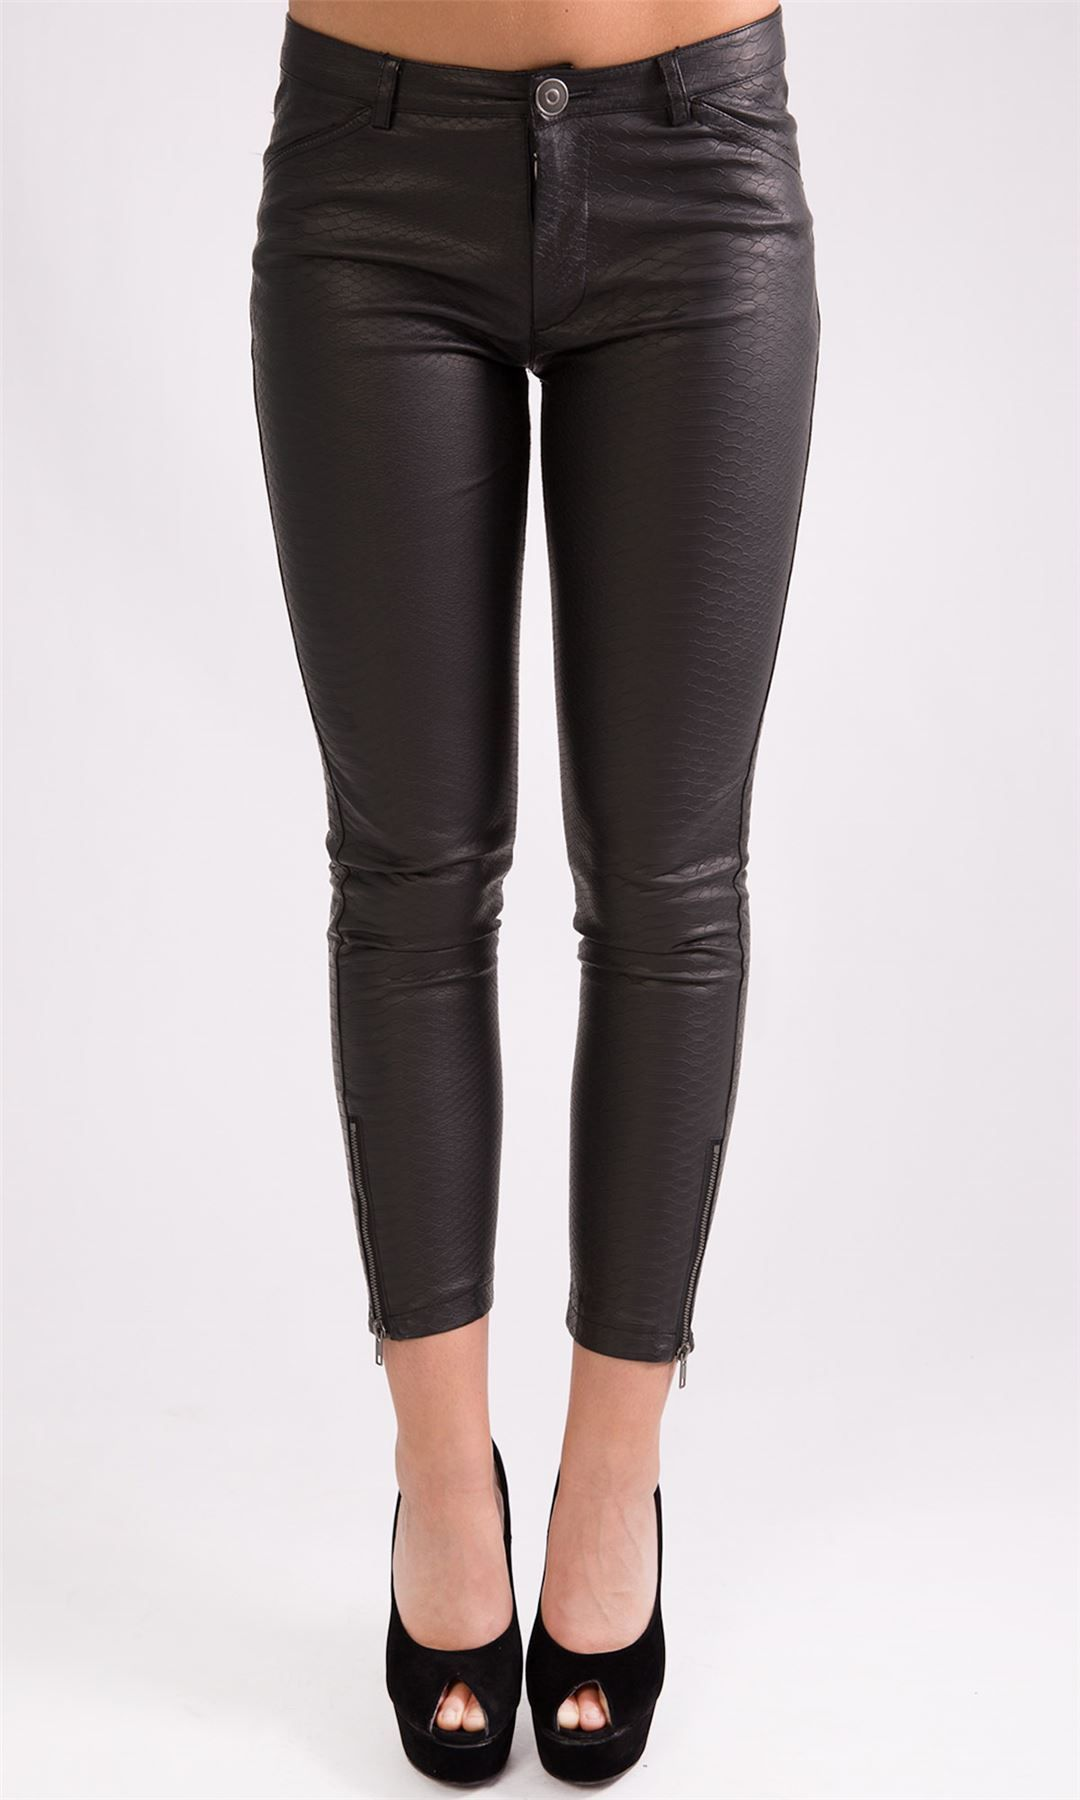 faux leather pants for women